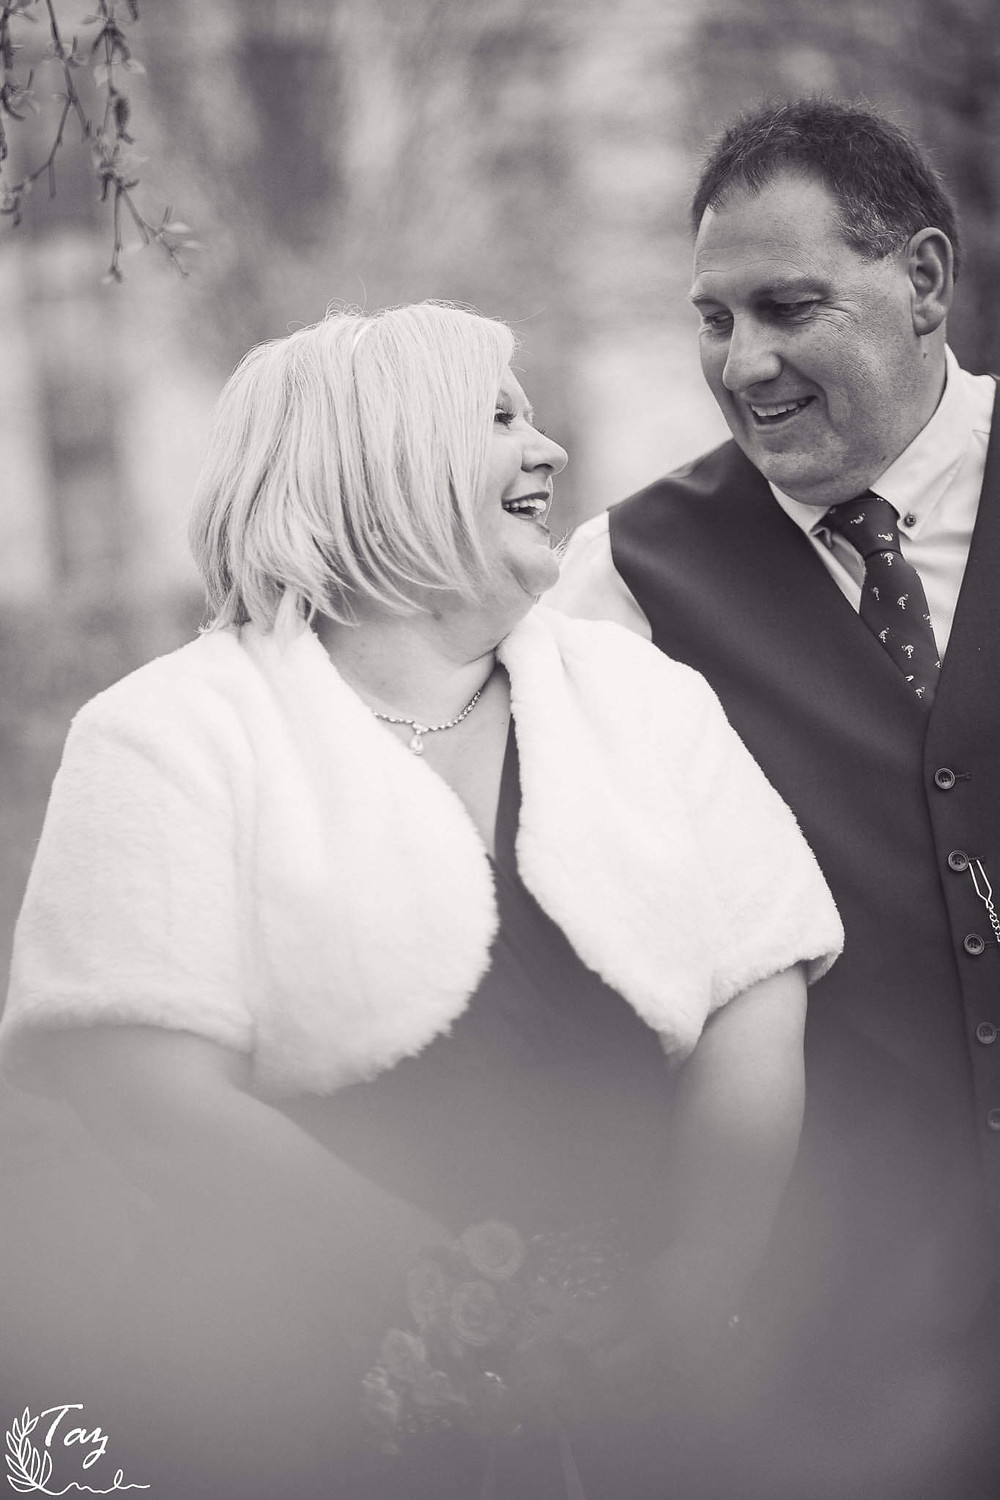 Kelly & Ian bride & groom photo at Cardiff City Hall, 2021 wedding photography by 'Weddings by Taz', South Wales